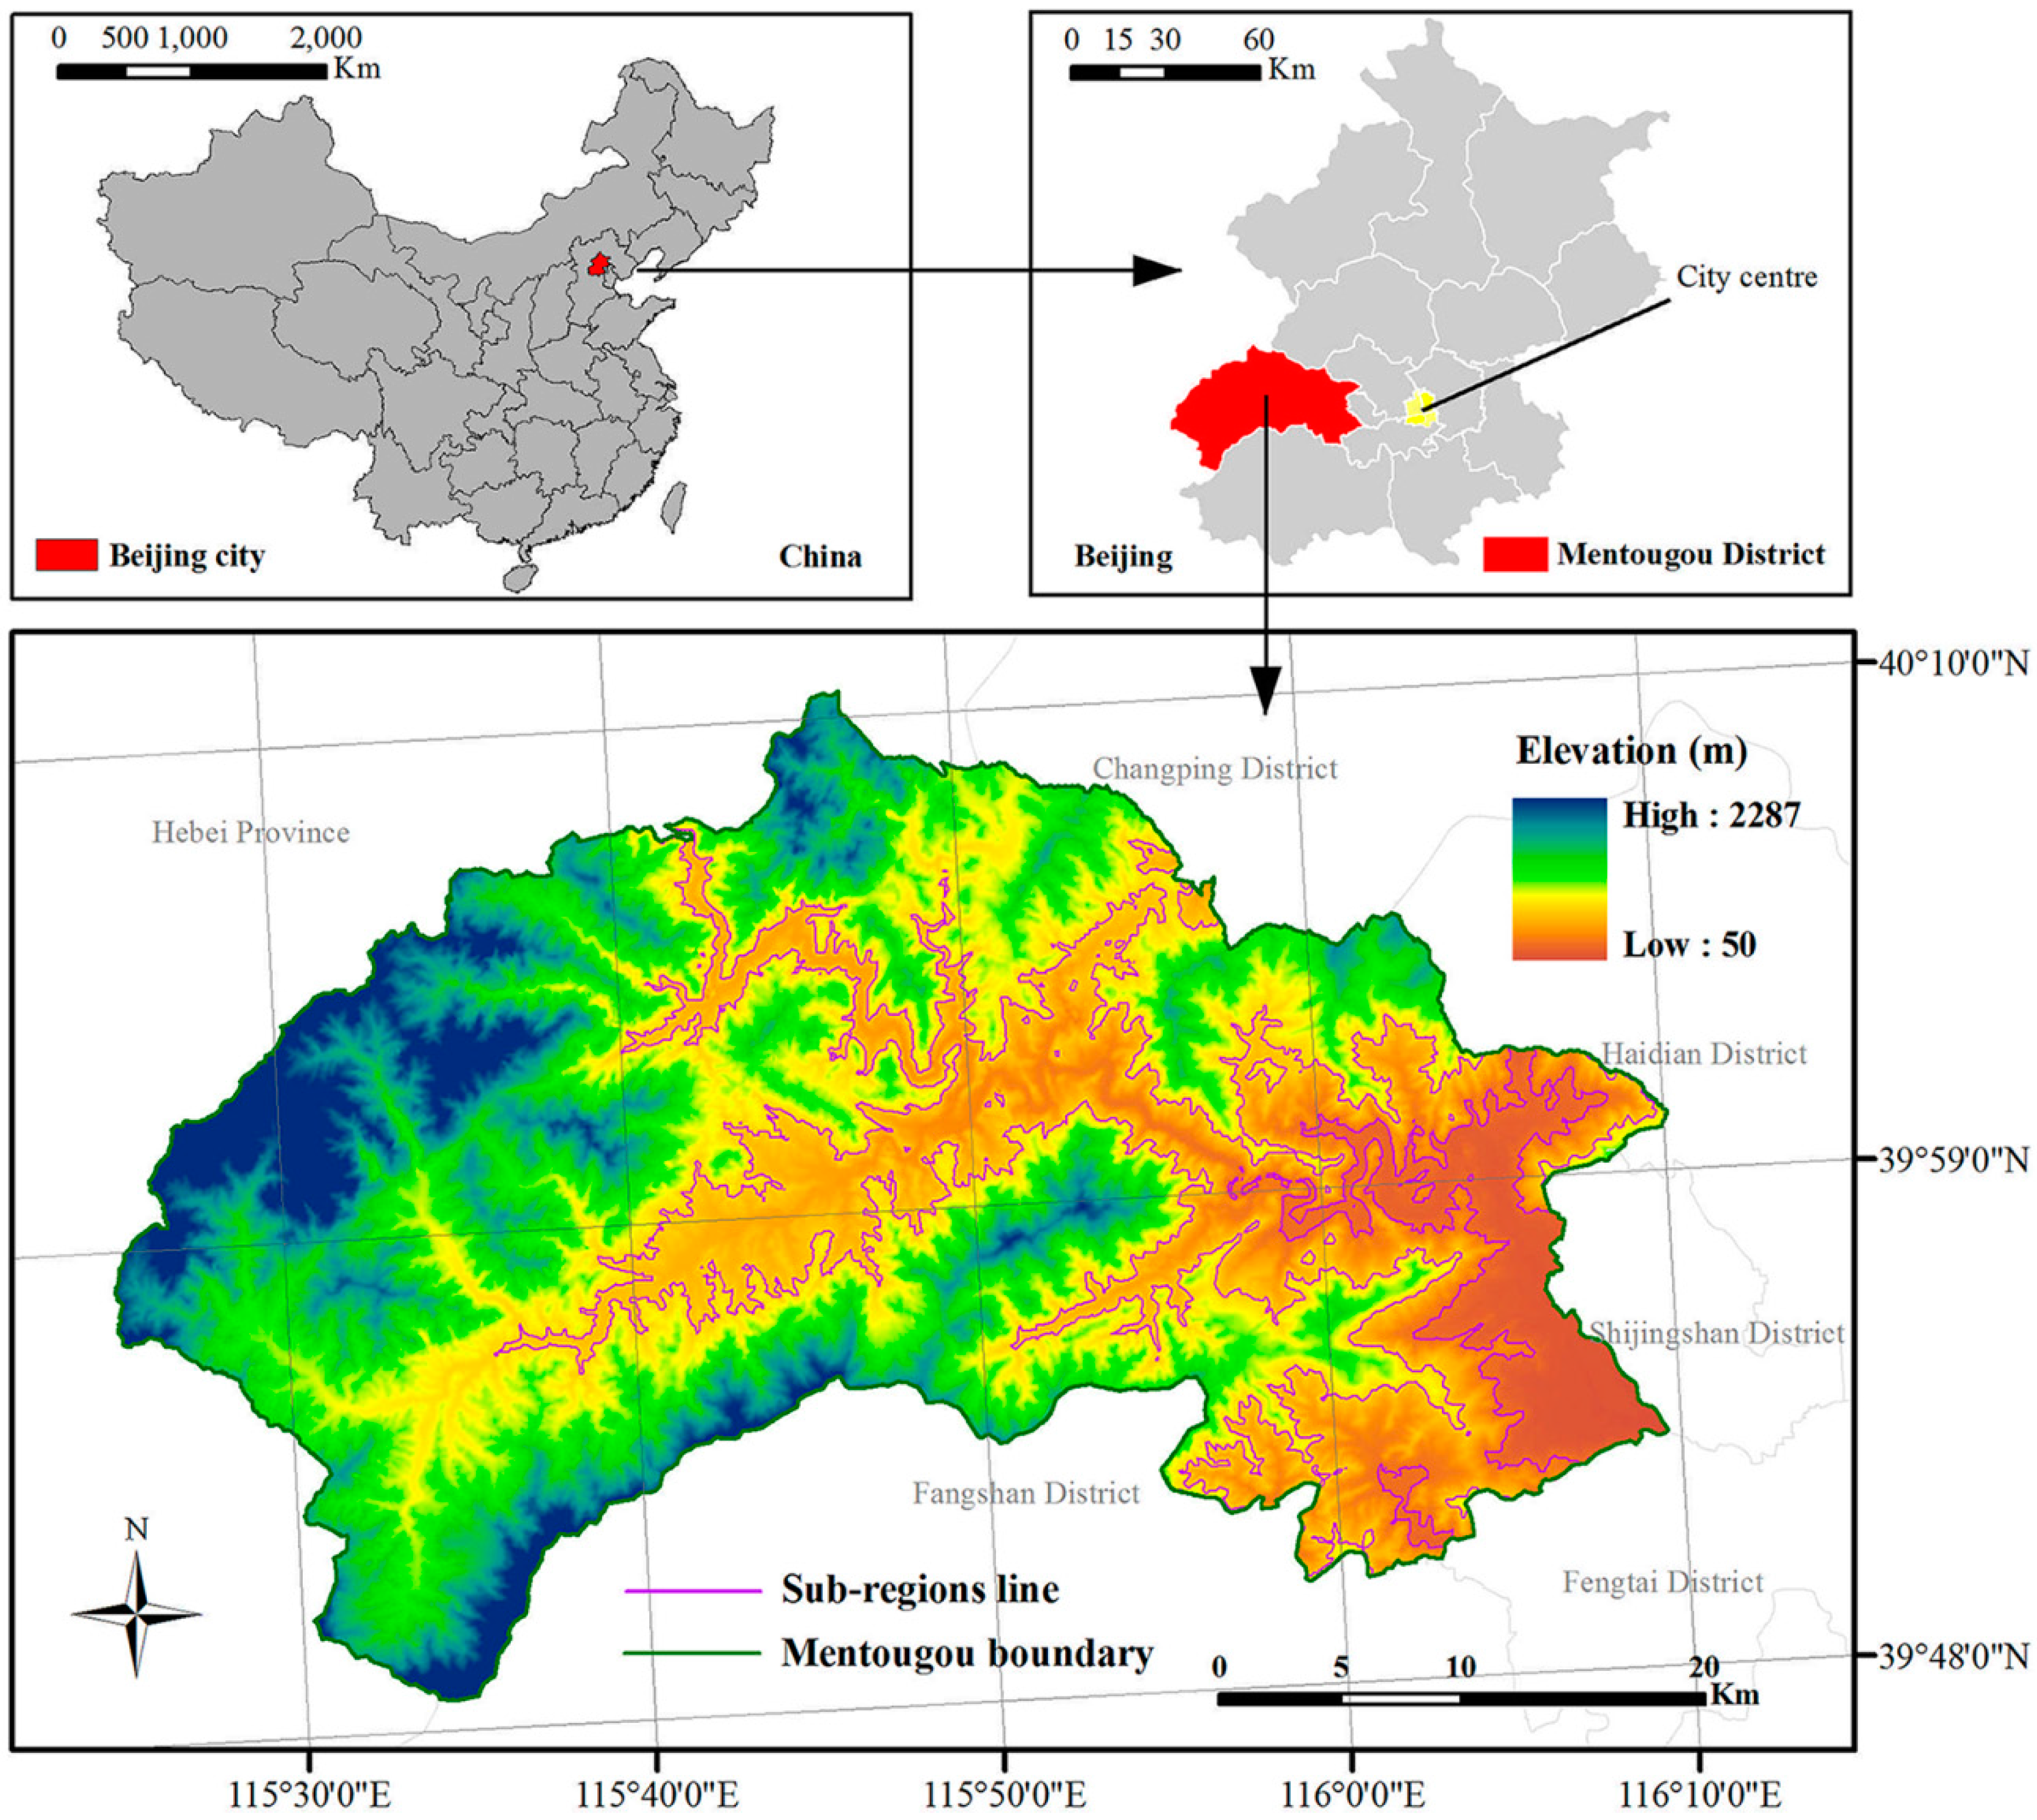 effects of urbanization essay Urbanization essay irrespective of geographical location, the impact and effects of urbanization can be extremely troublesome in britain, for instance.